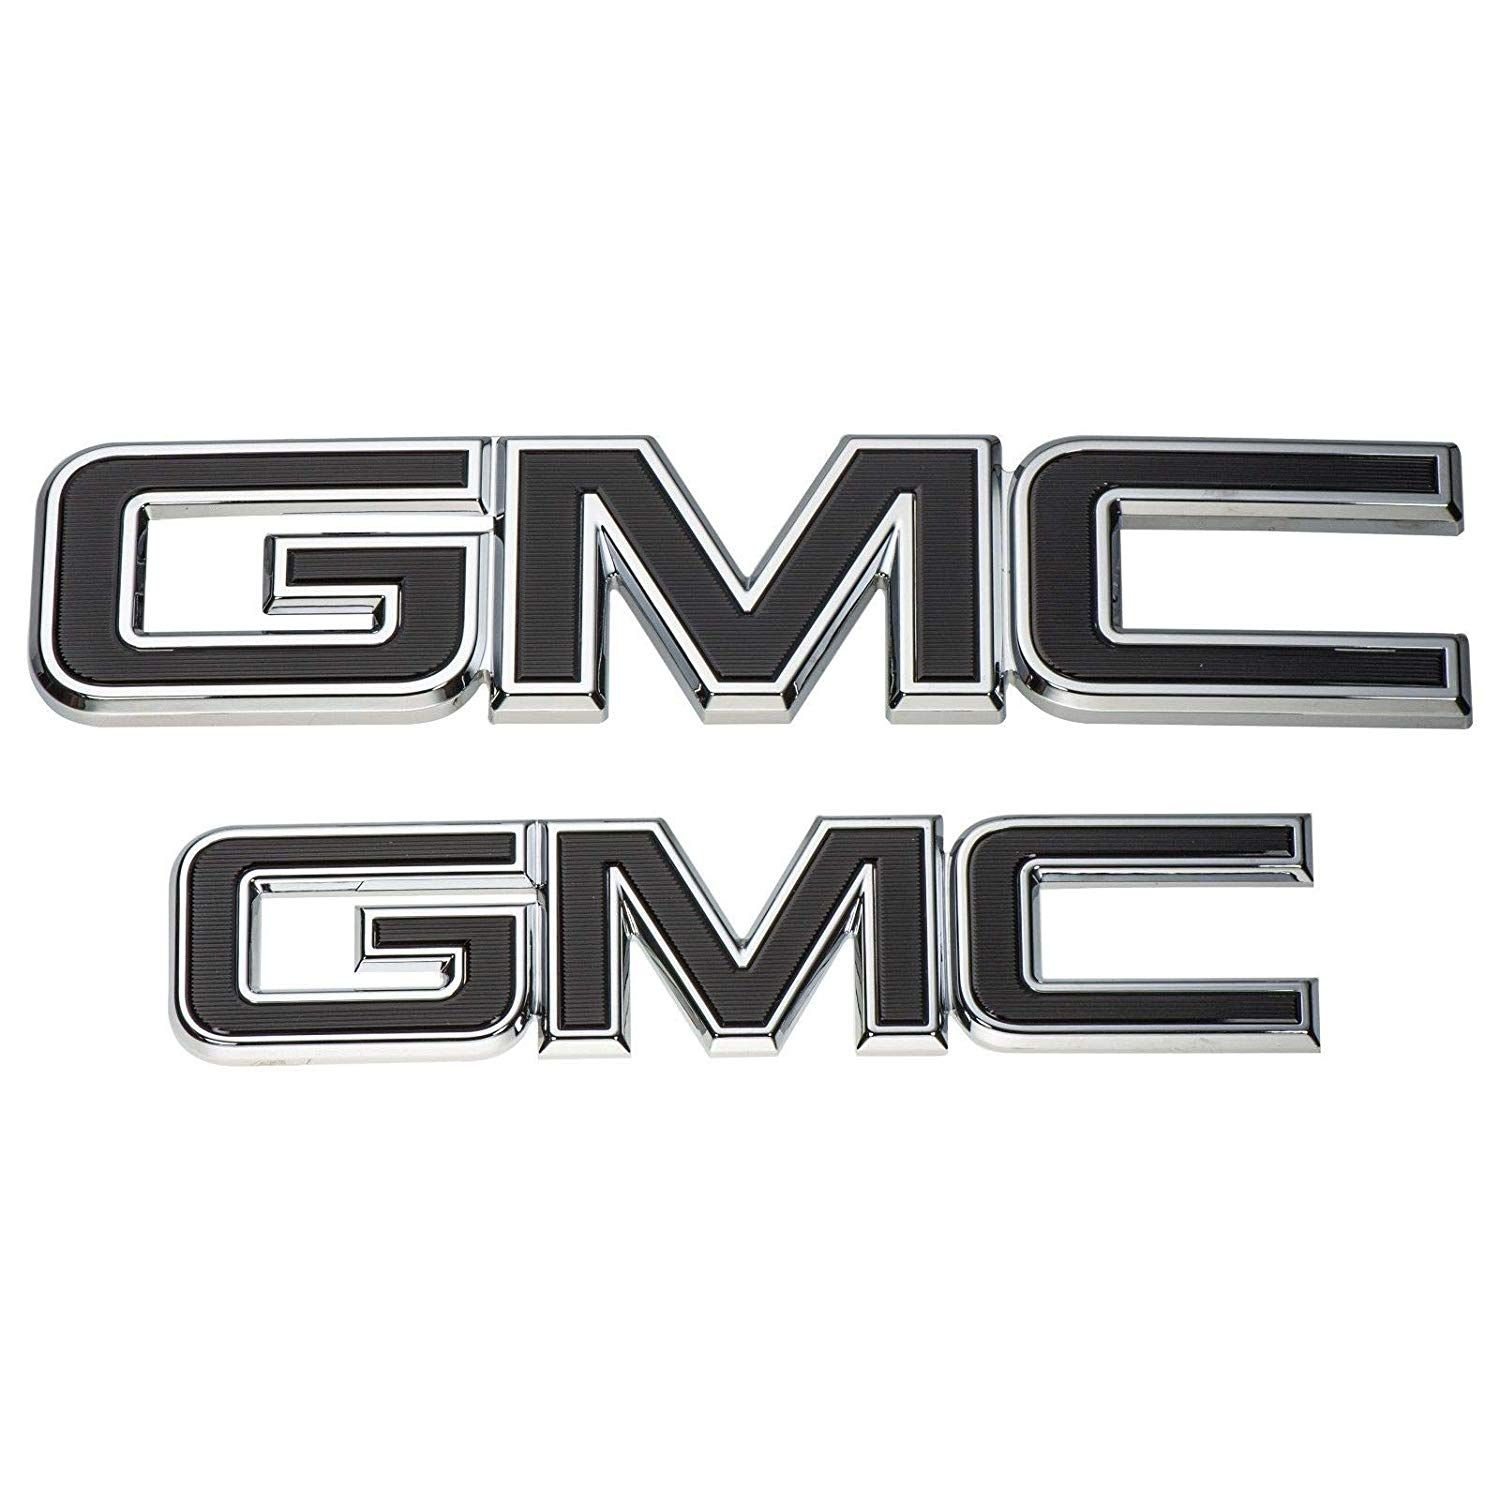 Gm 84395038 Front And Rear Black Emblem Package Gmc Sierra Click Image For More Details This Is An Affiliate Link Exterior Accessories Stick Duramax